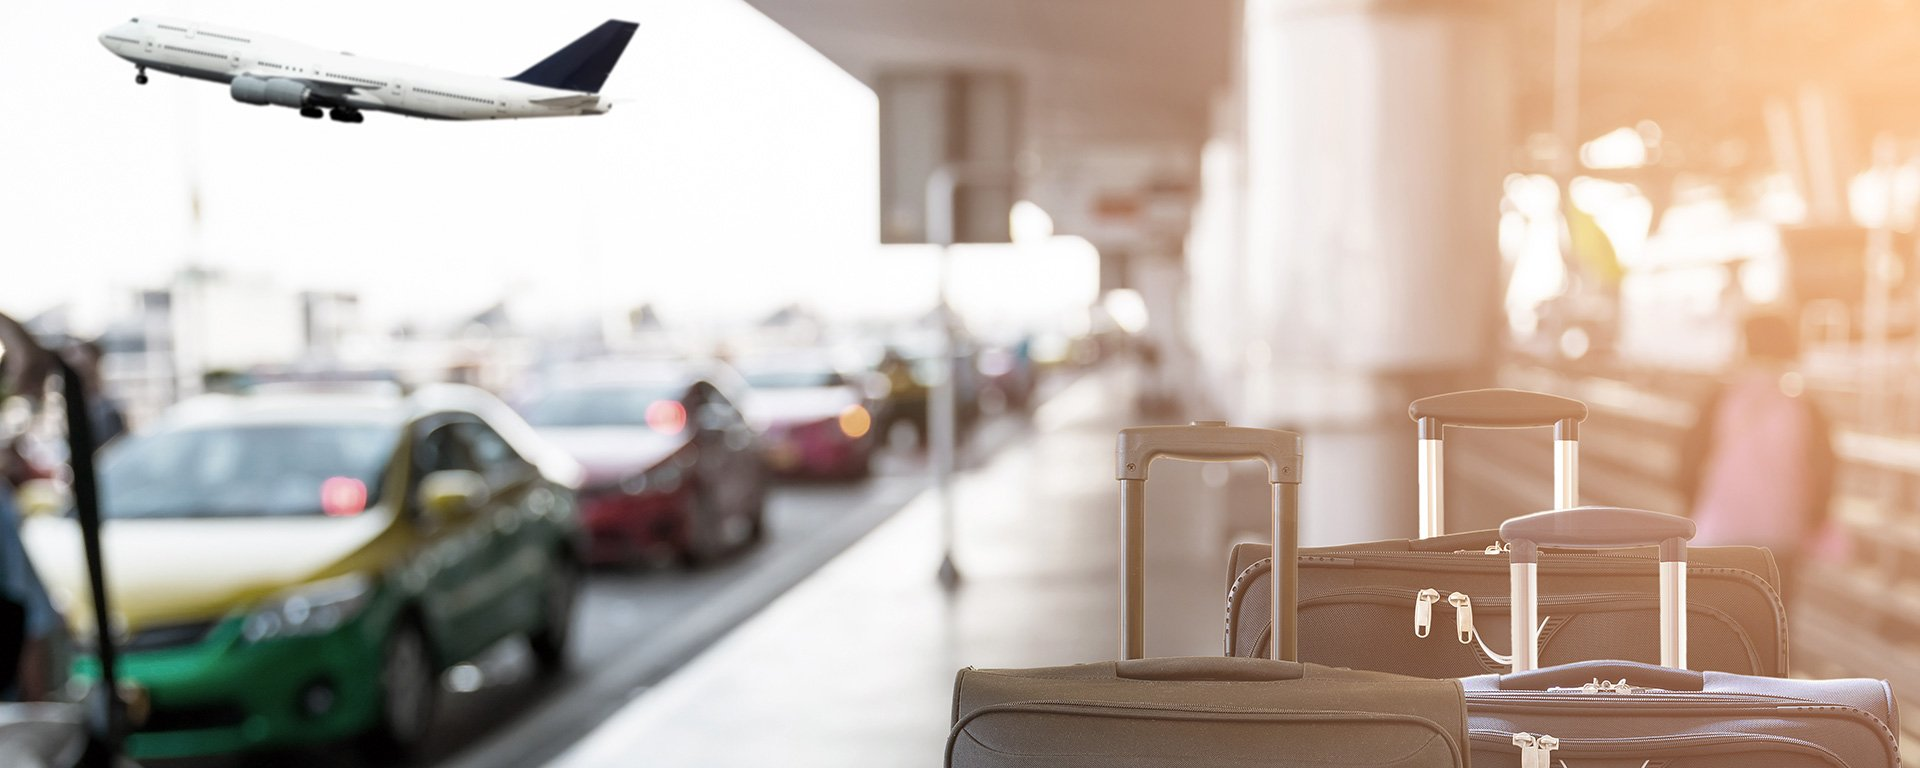 Reliable airport taxi service in Rugby